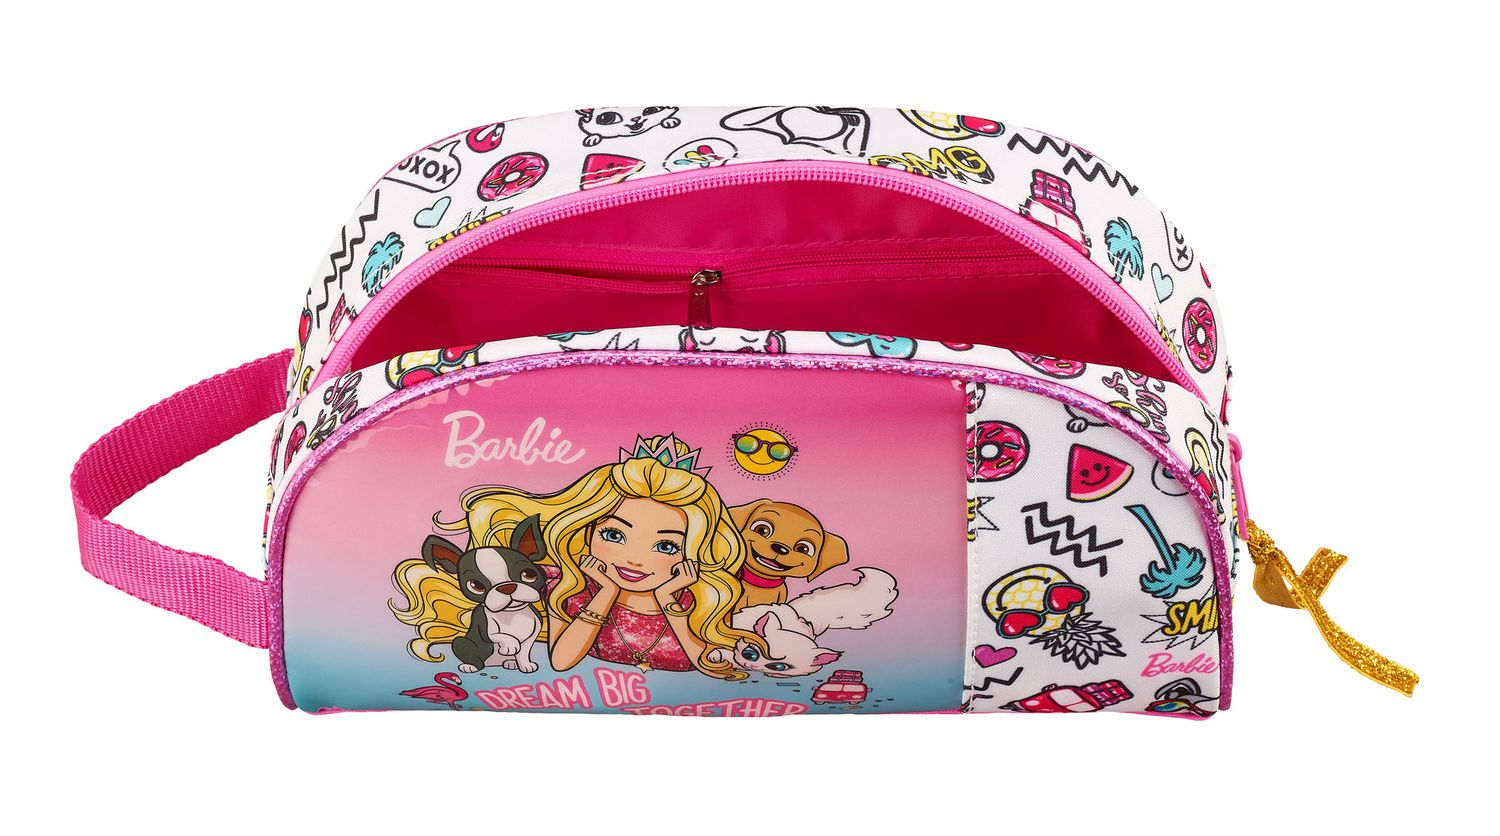 Makeup Bag Barbie Celebration – image 2